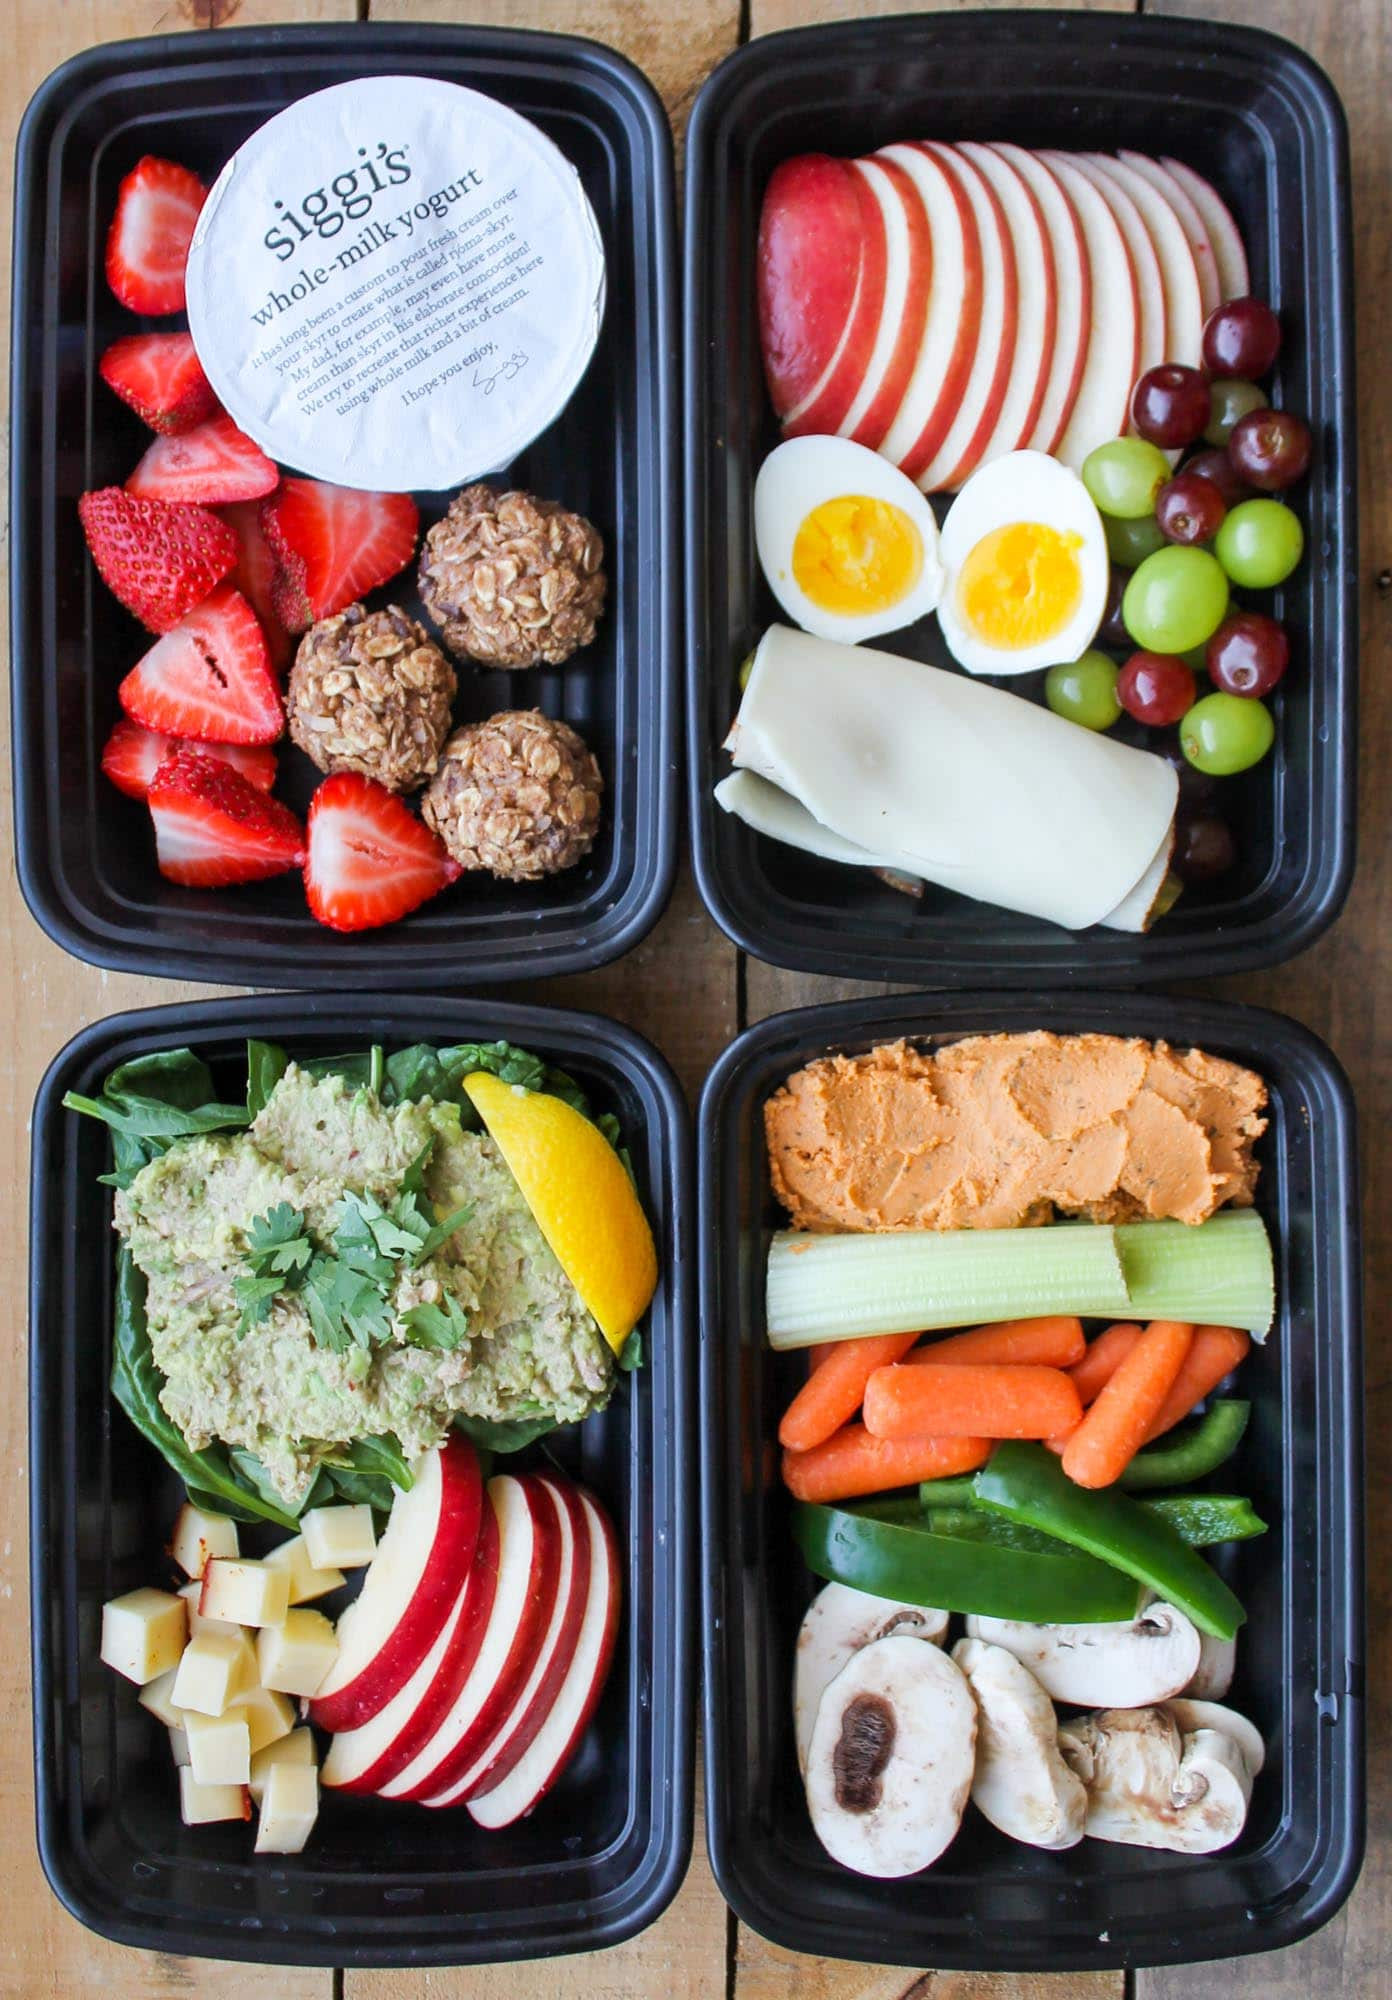 Healthy Snacks Images  4 Healthy Snack Box Ideas Smile Sandwich